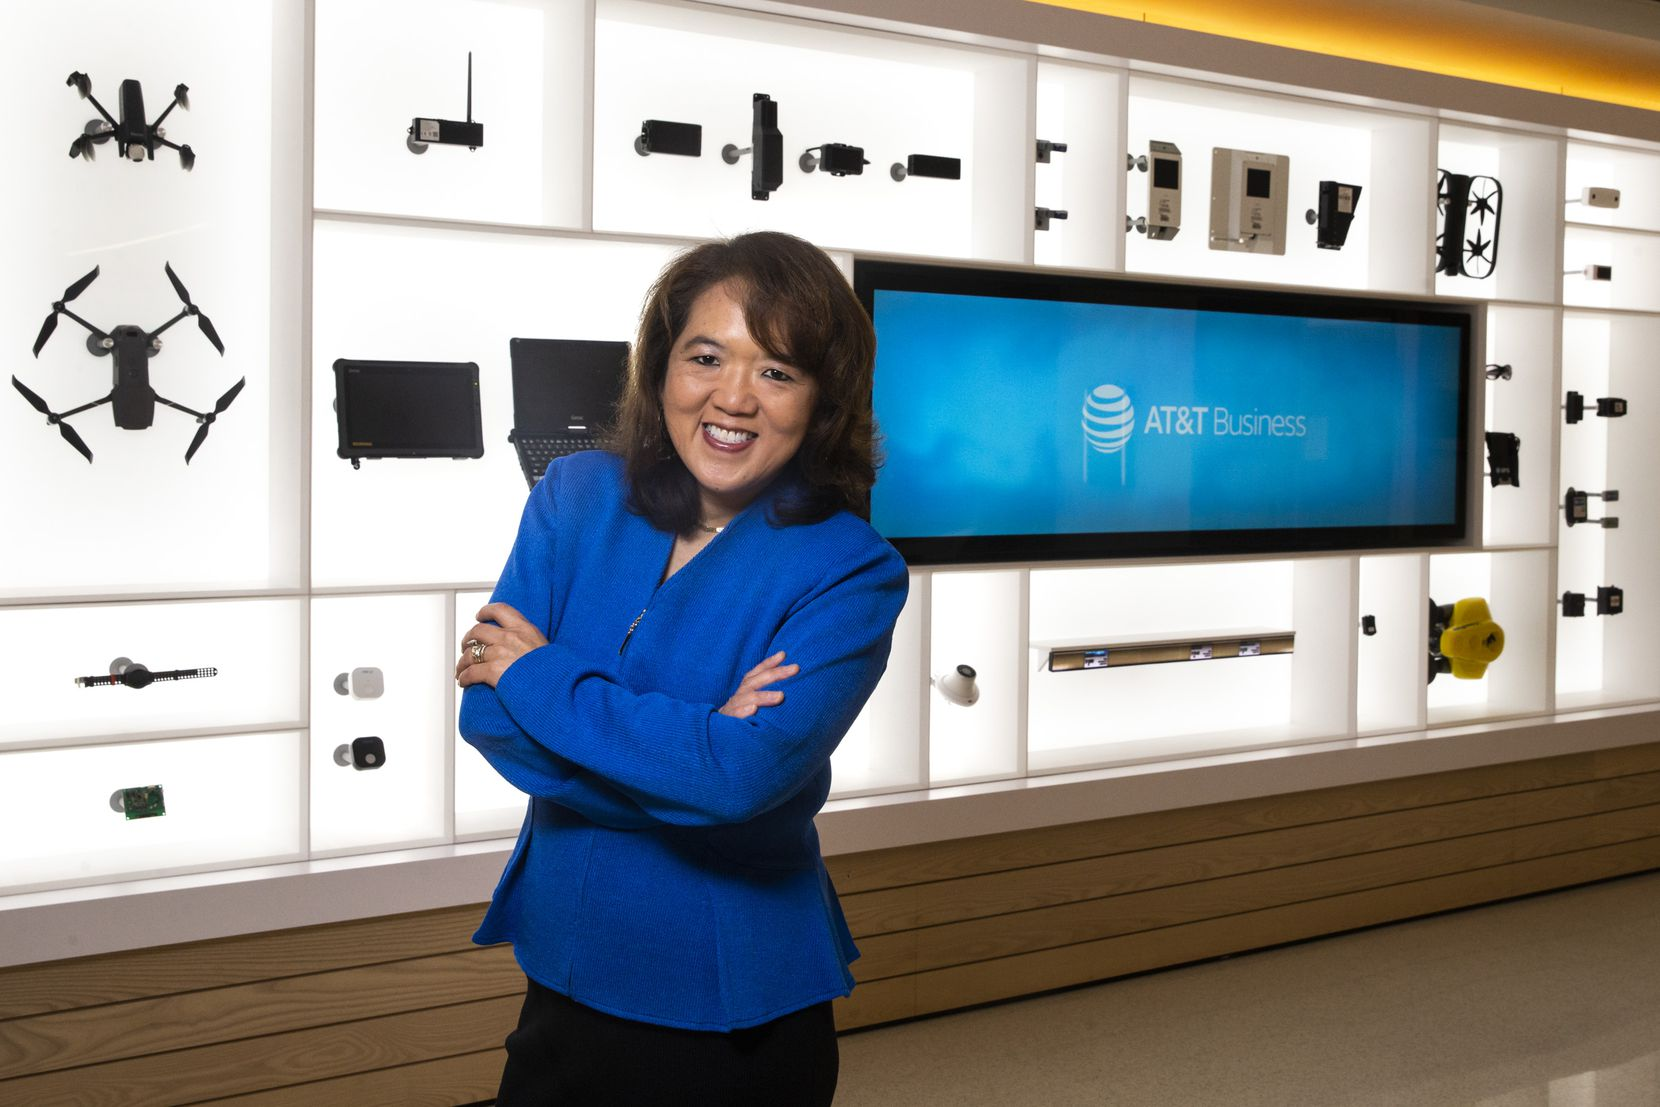 Anne Chow runs AT&T Business, the telecommunications giant's $37 billion unit that provides services to nearly 3 million business customers.